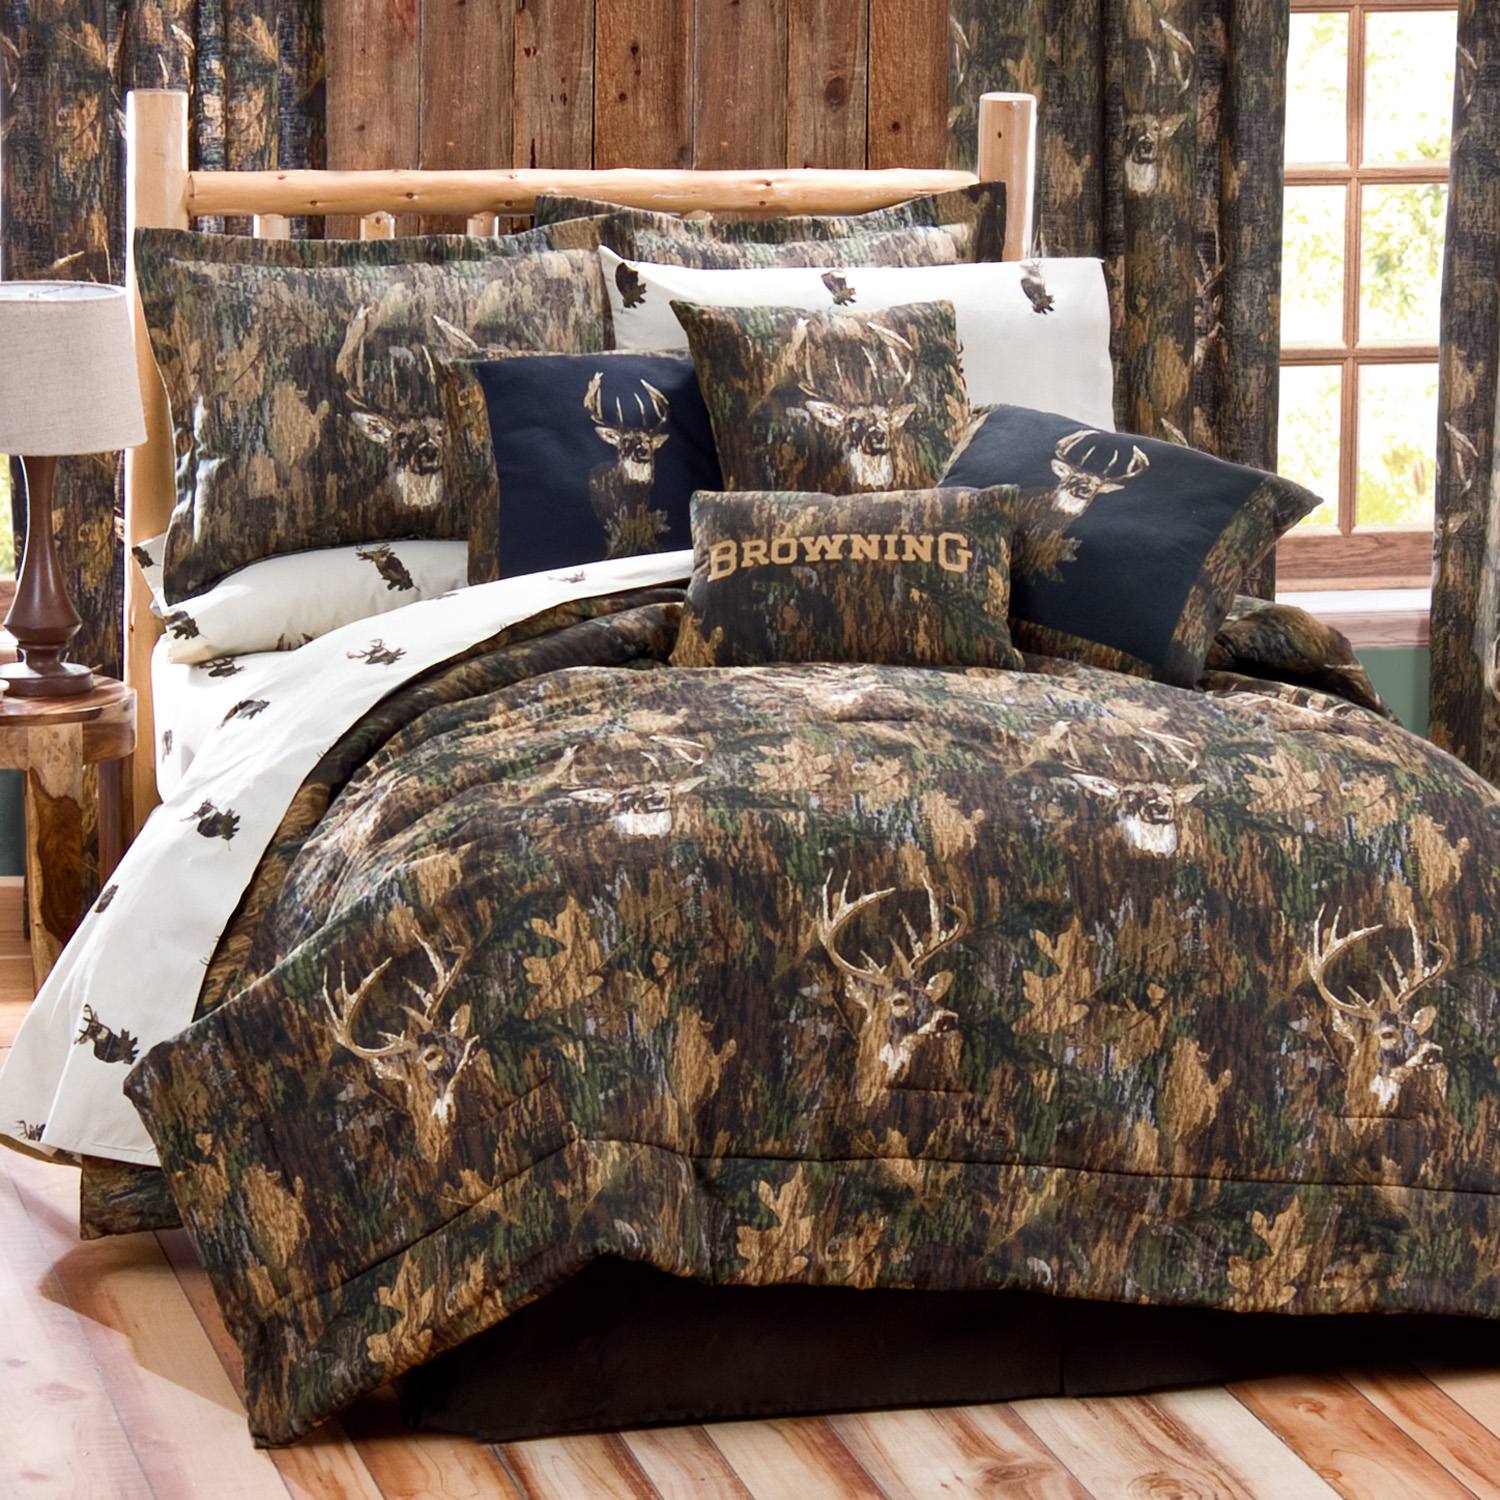 fe sets santa by camouflage rustic veratex decor queen comforter southwest bedding comforters home collections print unique